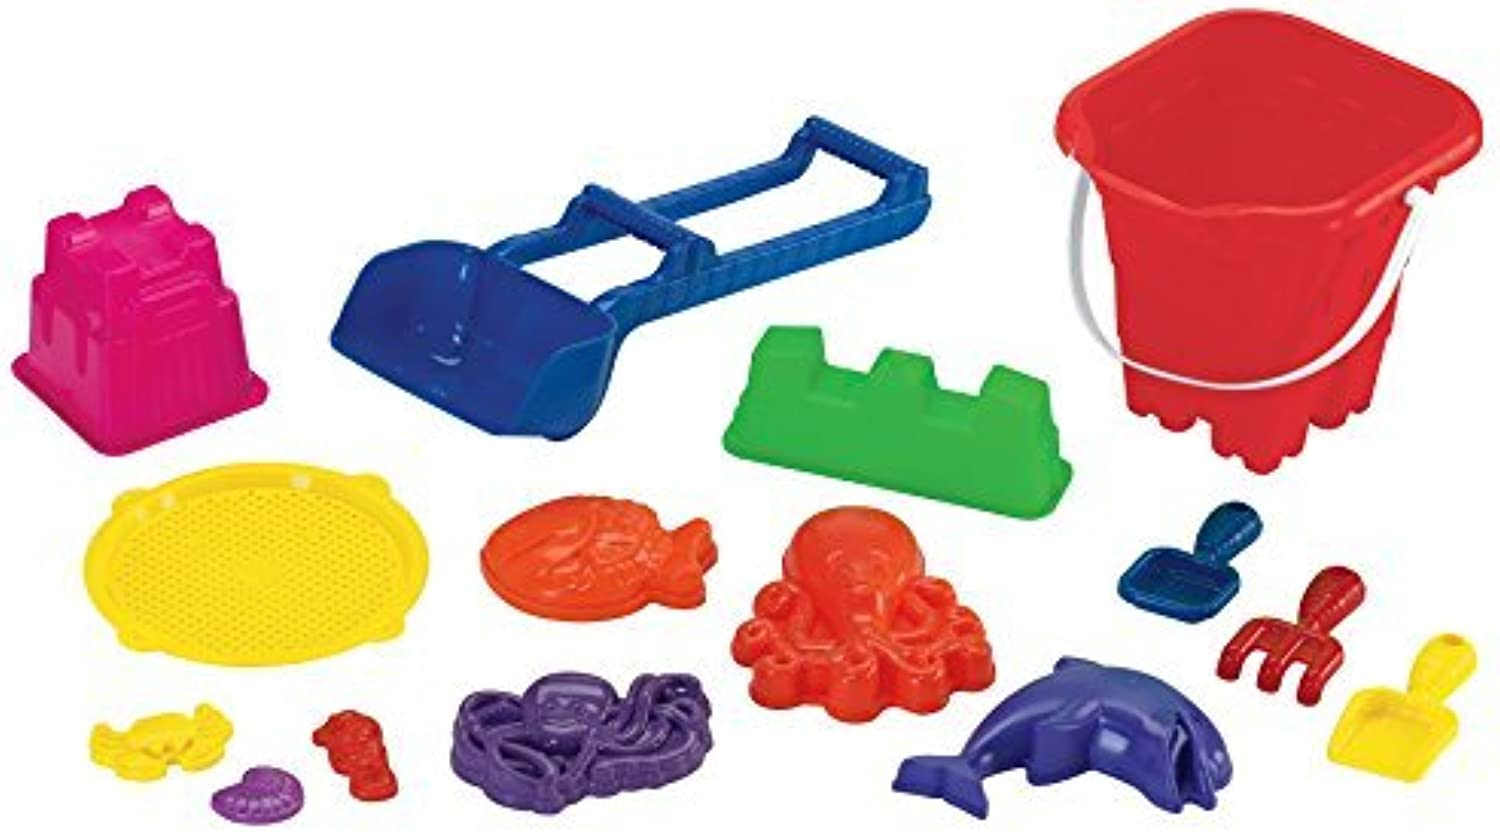 American Plastic Toys 15 Pieces Beach Set of Toys by American Plastic Toys